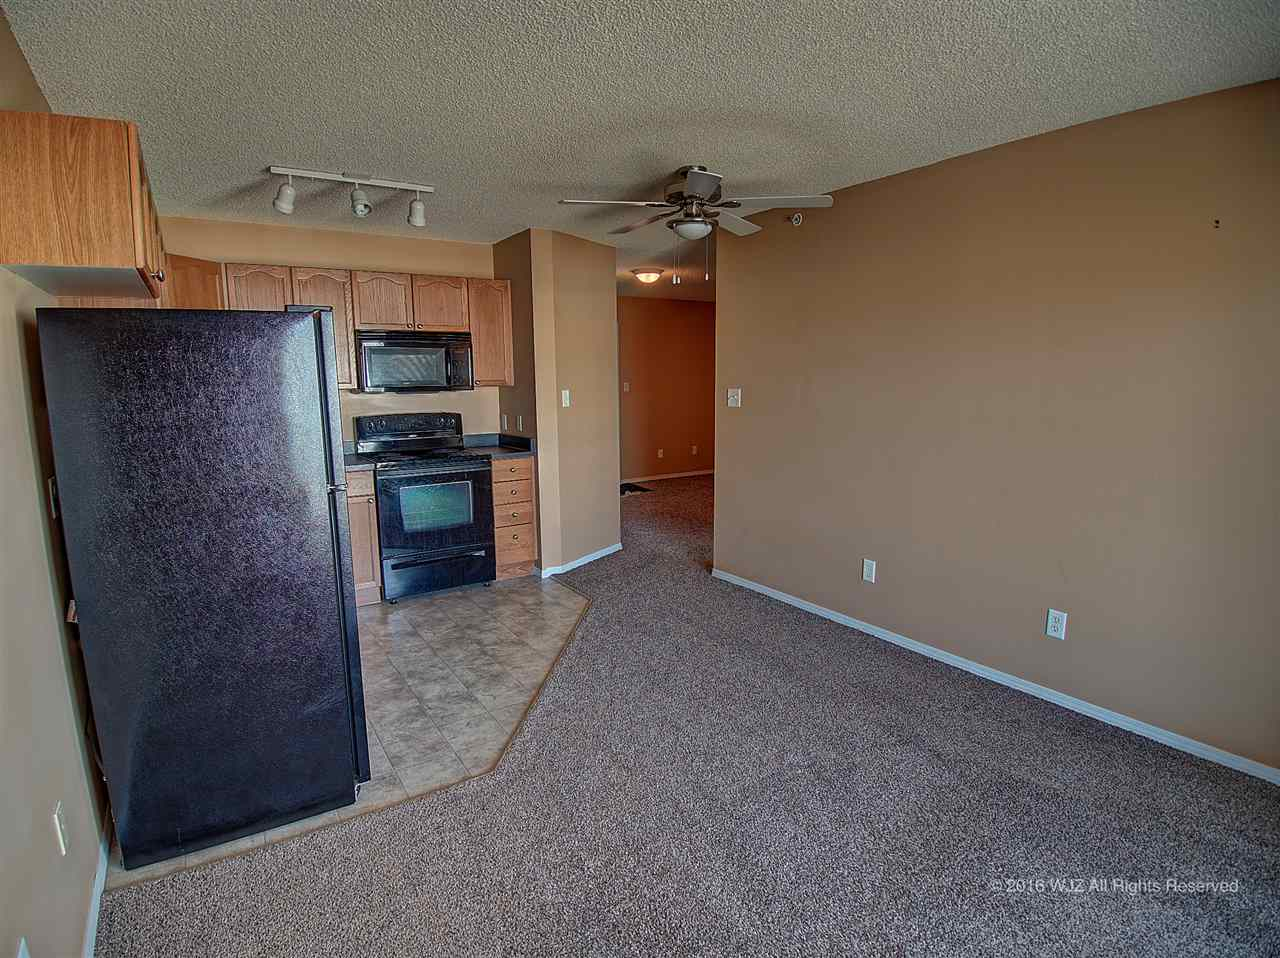 Photo 16: 423 70 woodsmere Close: Fort Saskatchewan Condo for sale : MLS(r) # E4031999